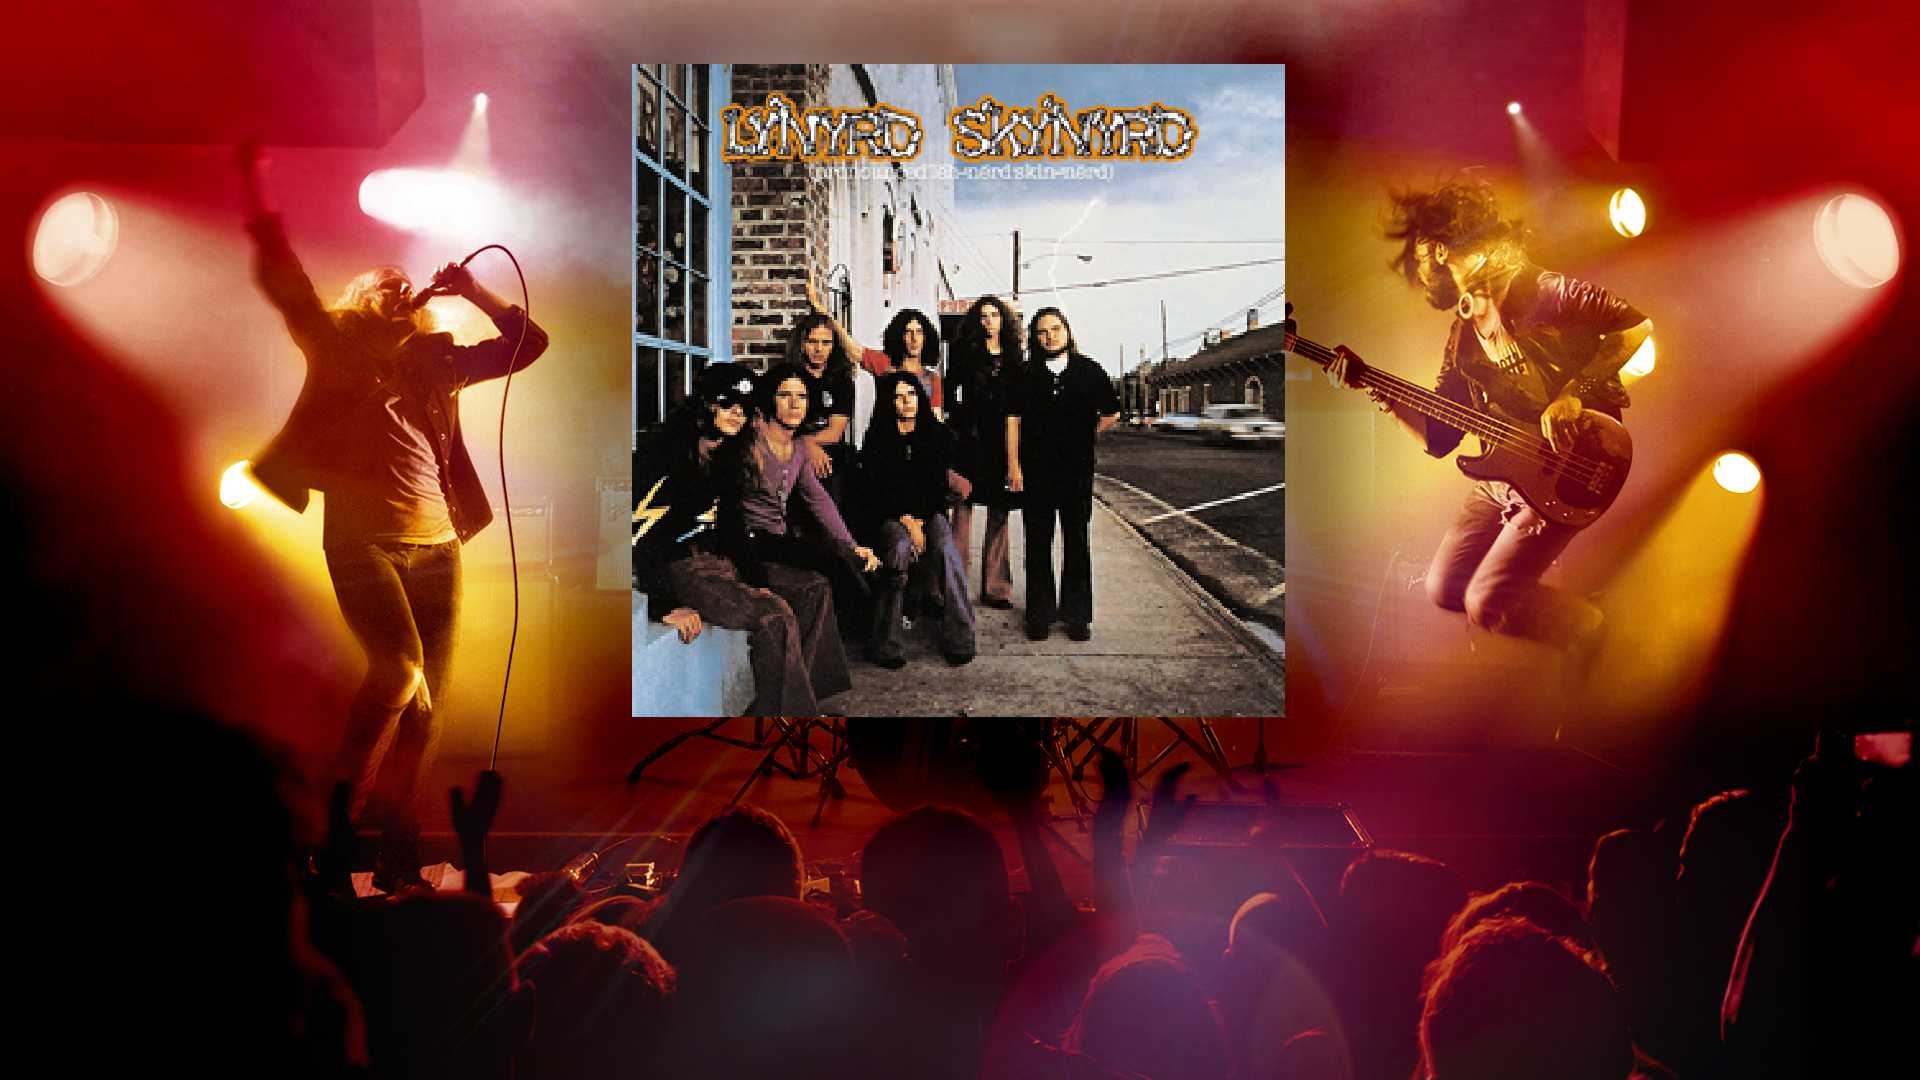 lynyrd skynyrd essays Posted by lynyrd skynyrd on tuesday, october 13, 2015 rossington, 63, is one of the last original members of the iconic band that was once fronted by lead singer ronnie van zant.